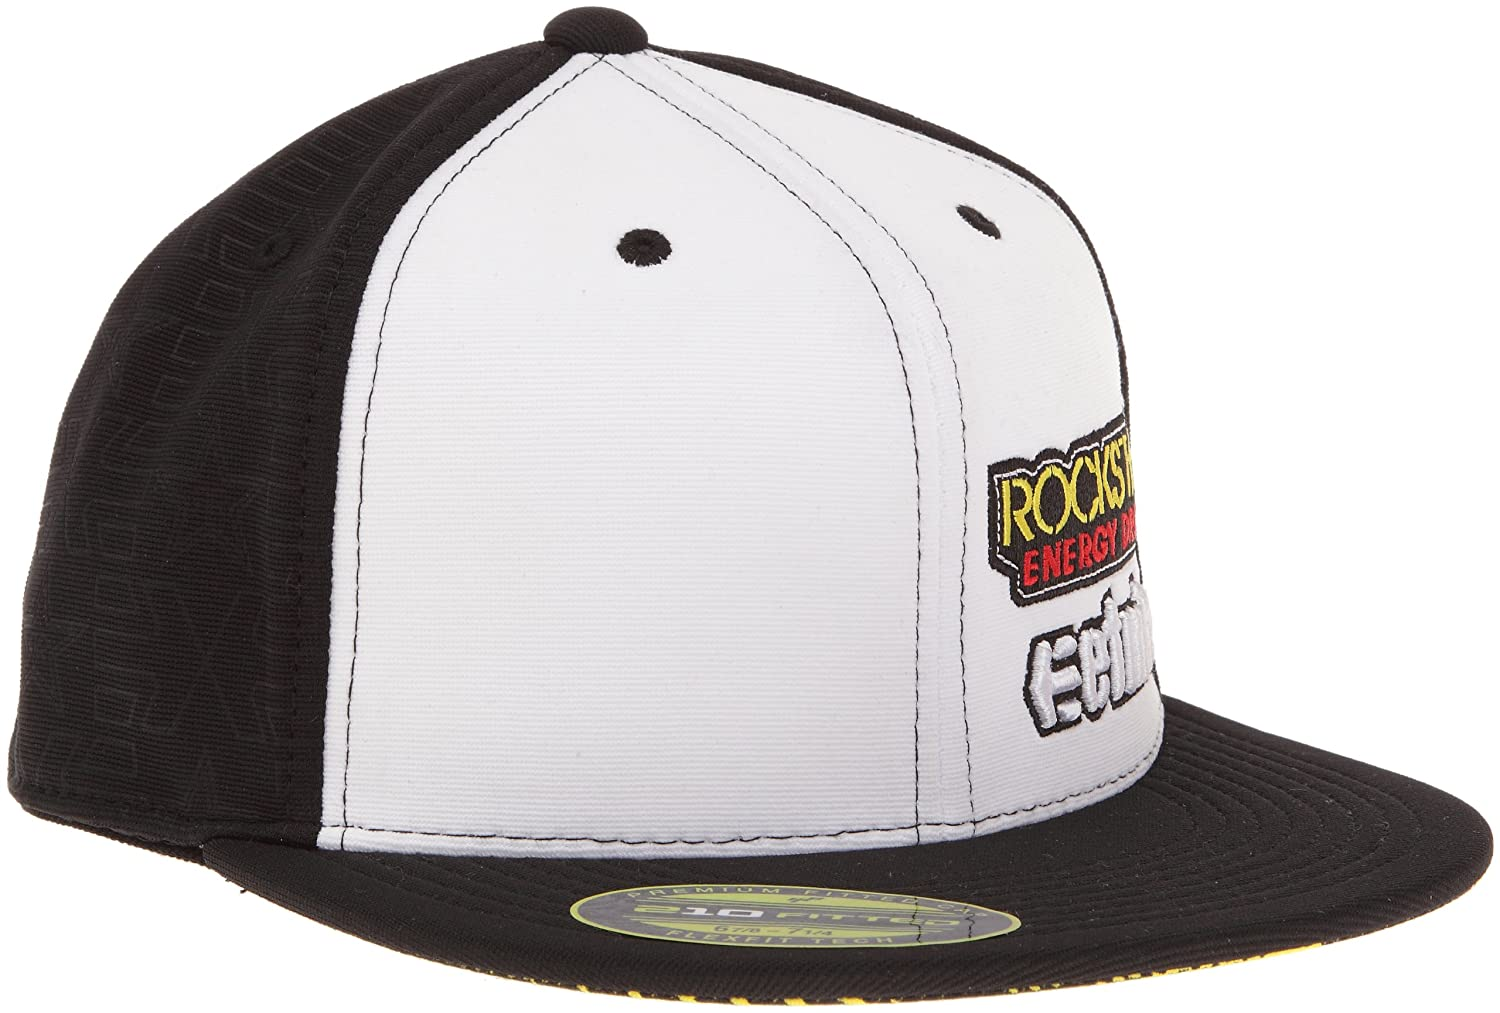 etnies - Gorra para Hombre, Color Negro, Talla l/XL: Amazon.es ...